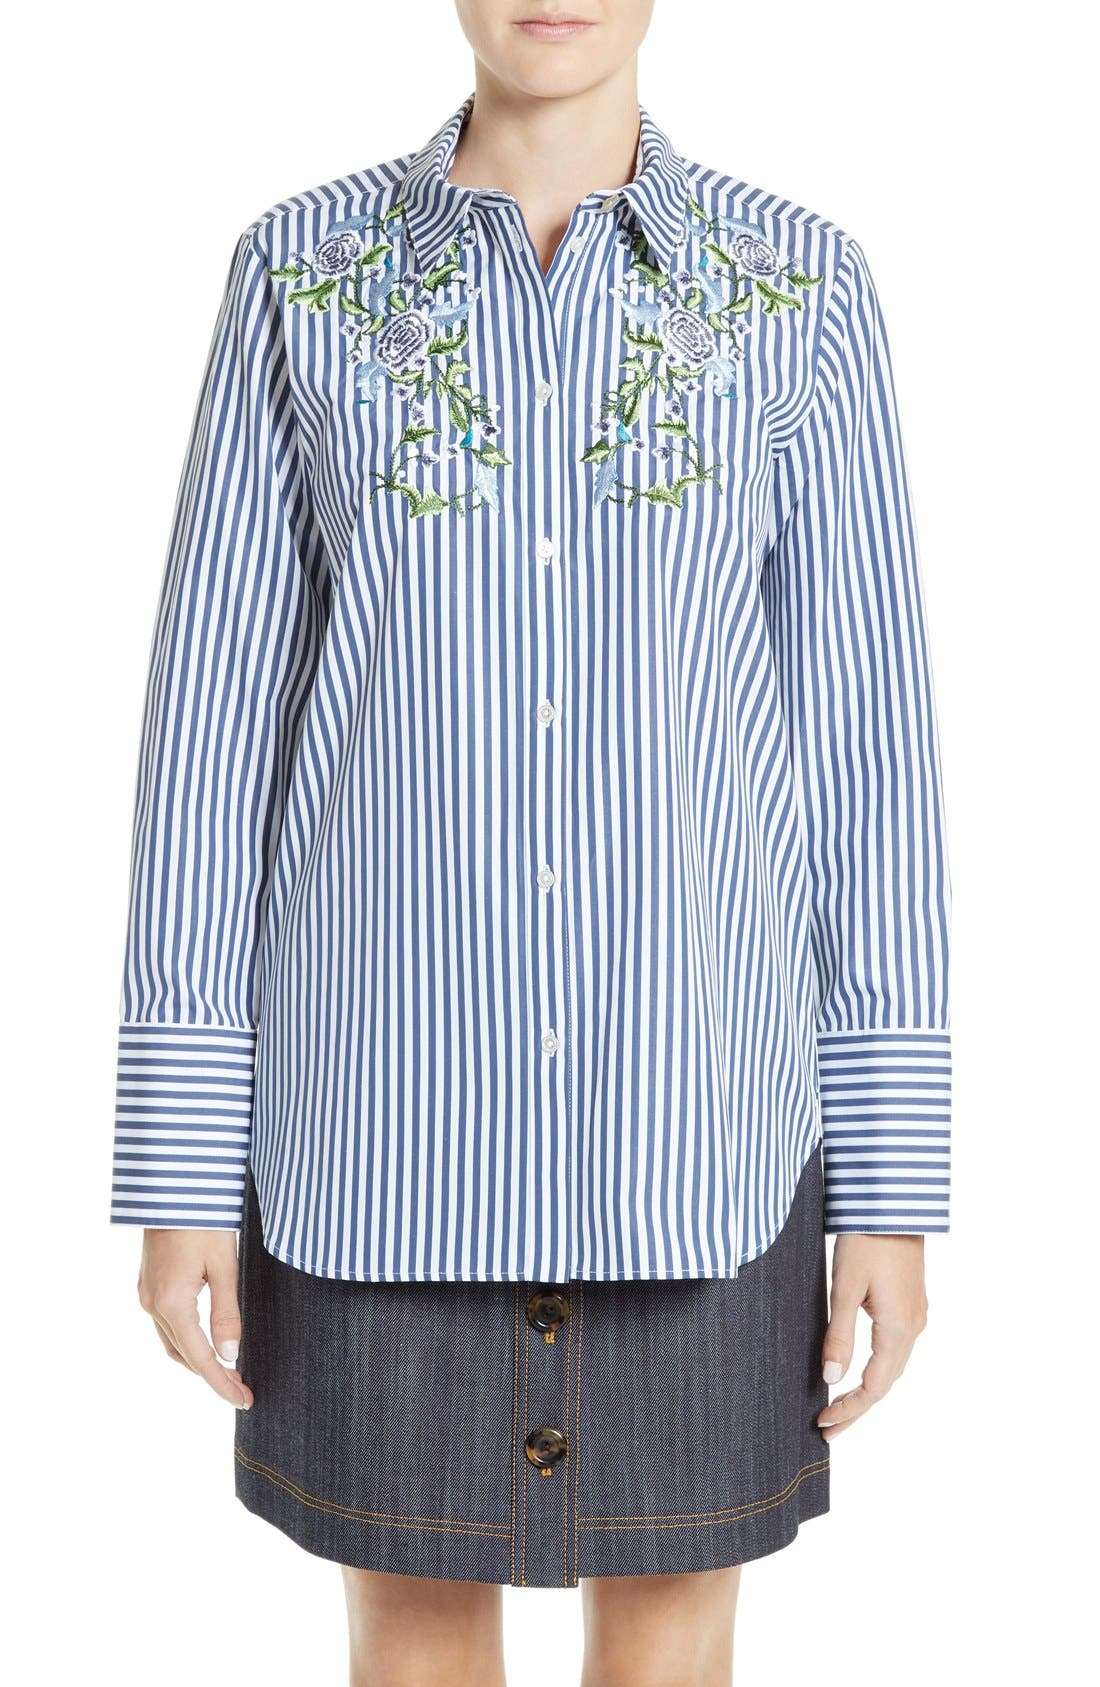 ADAM LIPPES Floral Embroidered Shirt